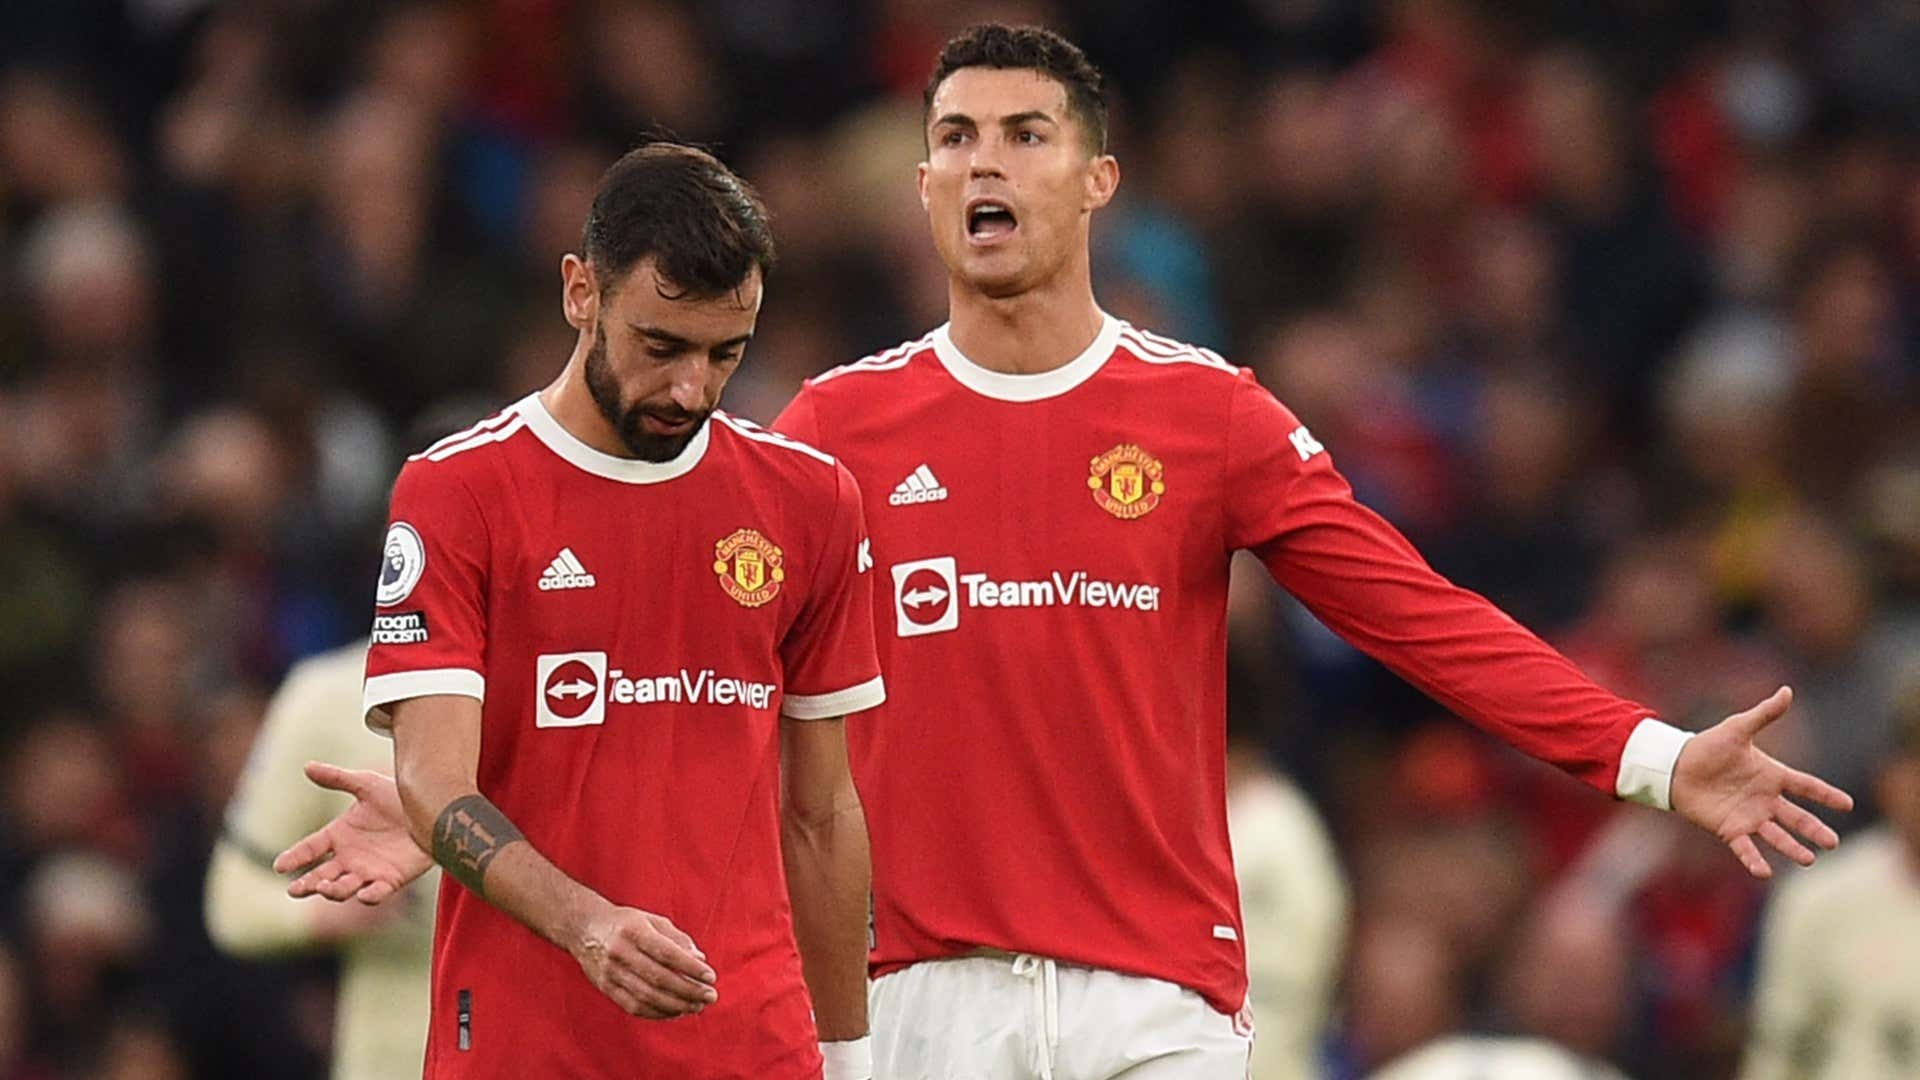 Manchester United hit 126-year low after Liverpool humiliation | Goal.com